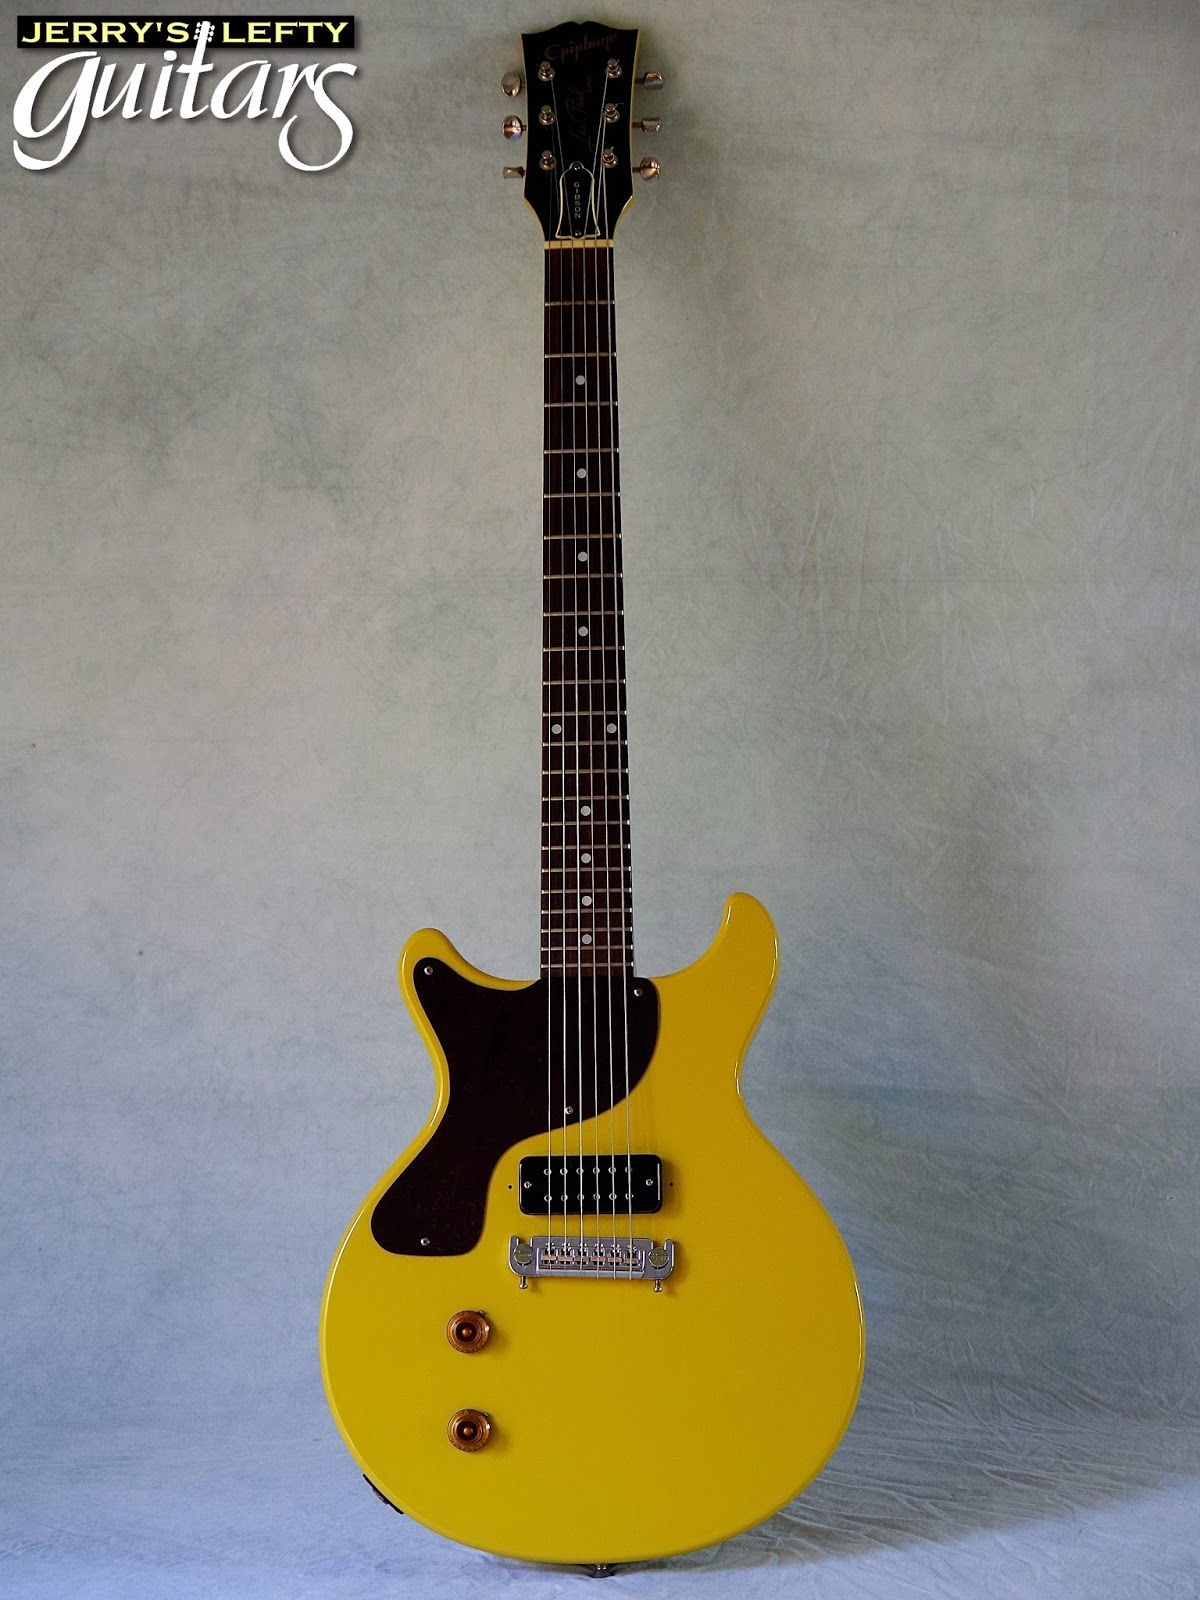 jerry 39 s lefty guitars newest guitar arrivals updated weekly epiphone lp jr dc tv yellow used. Black Bedroom Furniture Sets. Home Design Ideas